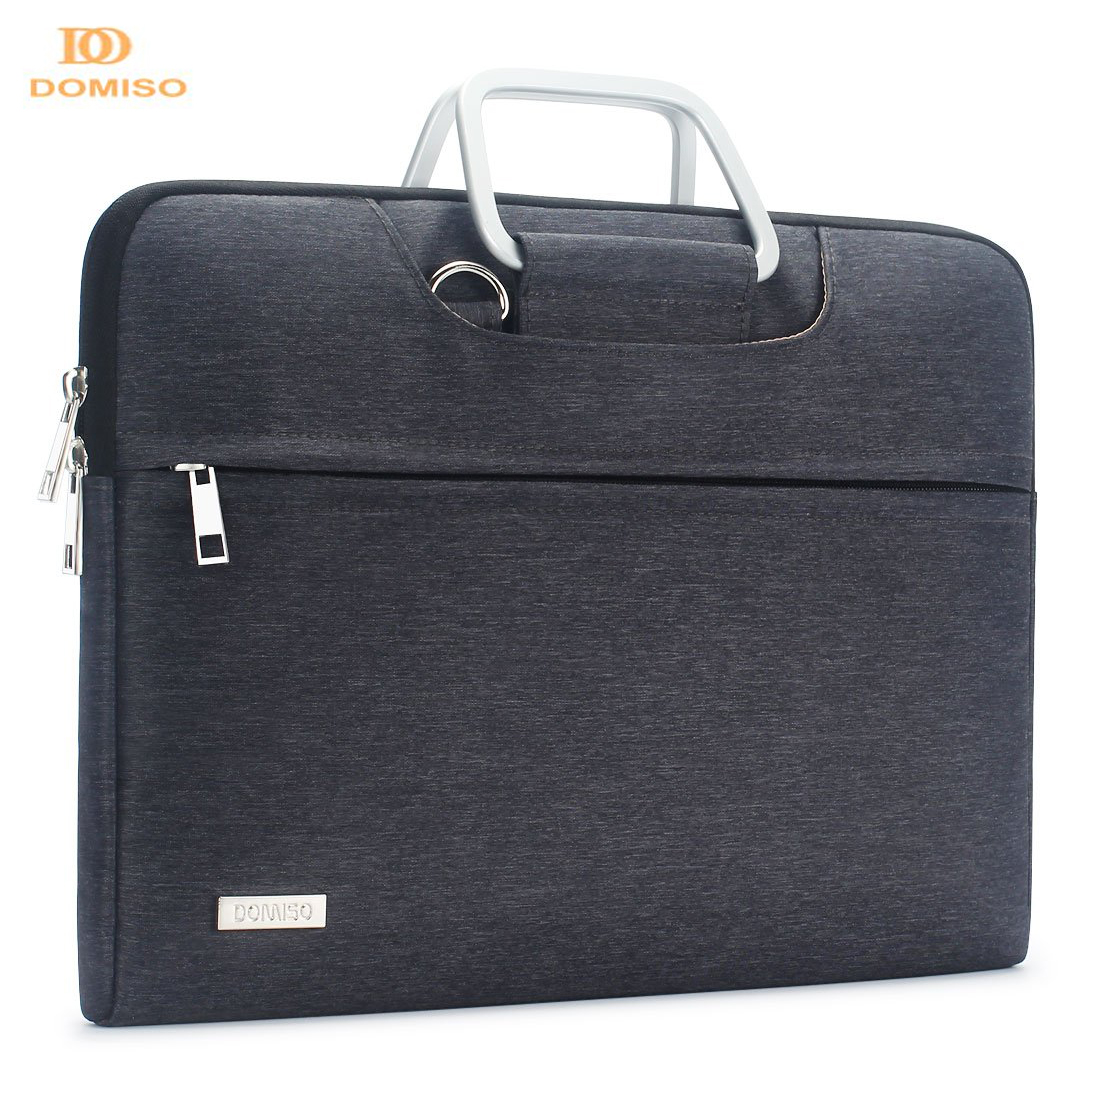 DOMISO Water Resistant Laptop Bag With Aluminum Handle Shoulder Strap Sleeve Carry Case 13 14 15.6 17.3 Inches Brown Grey